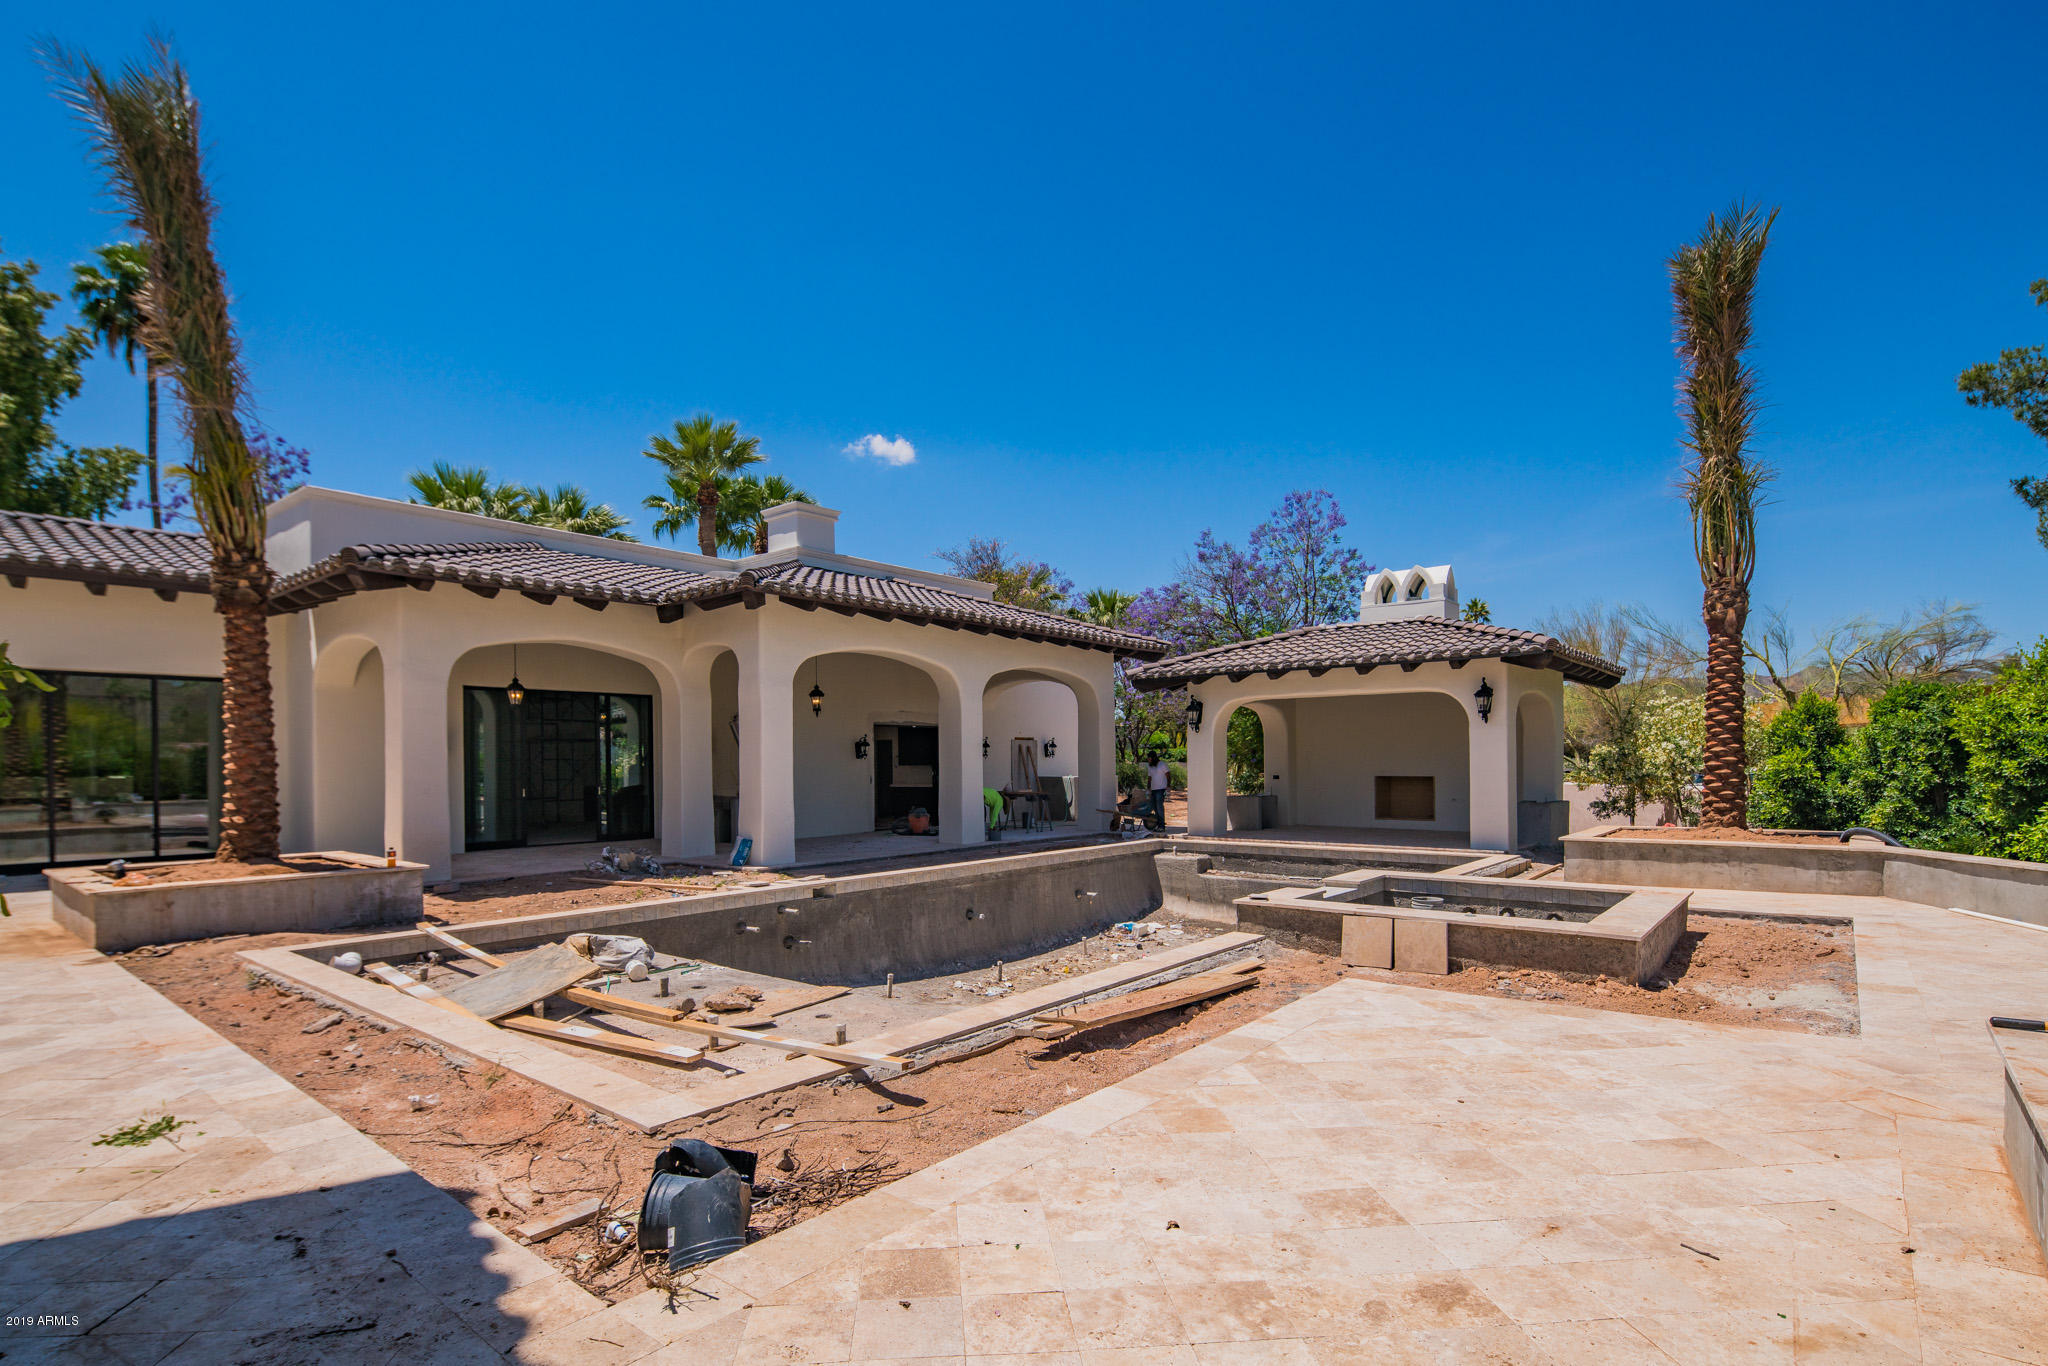 MLS 5923627 6010 E NAUMANN Drive, Paradise Valley, AZ 85253 Paradise Valley AZ Gated